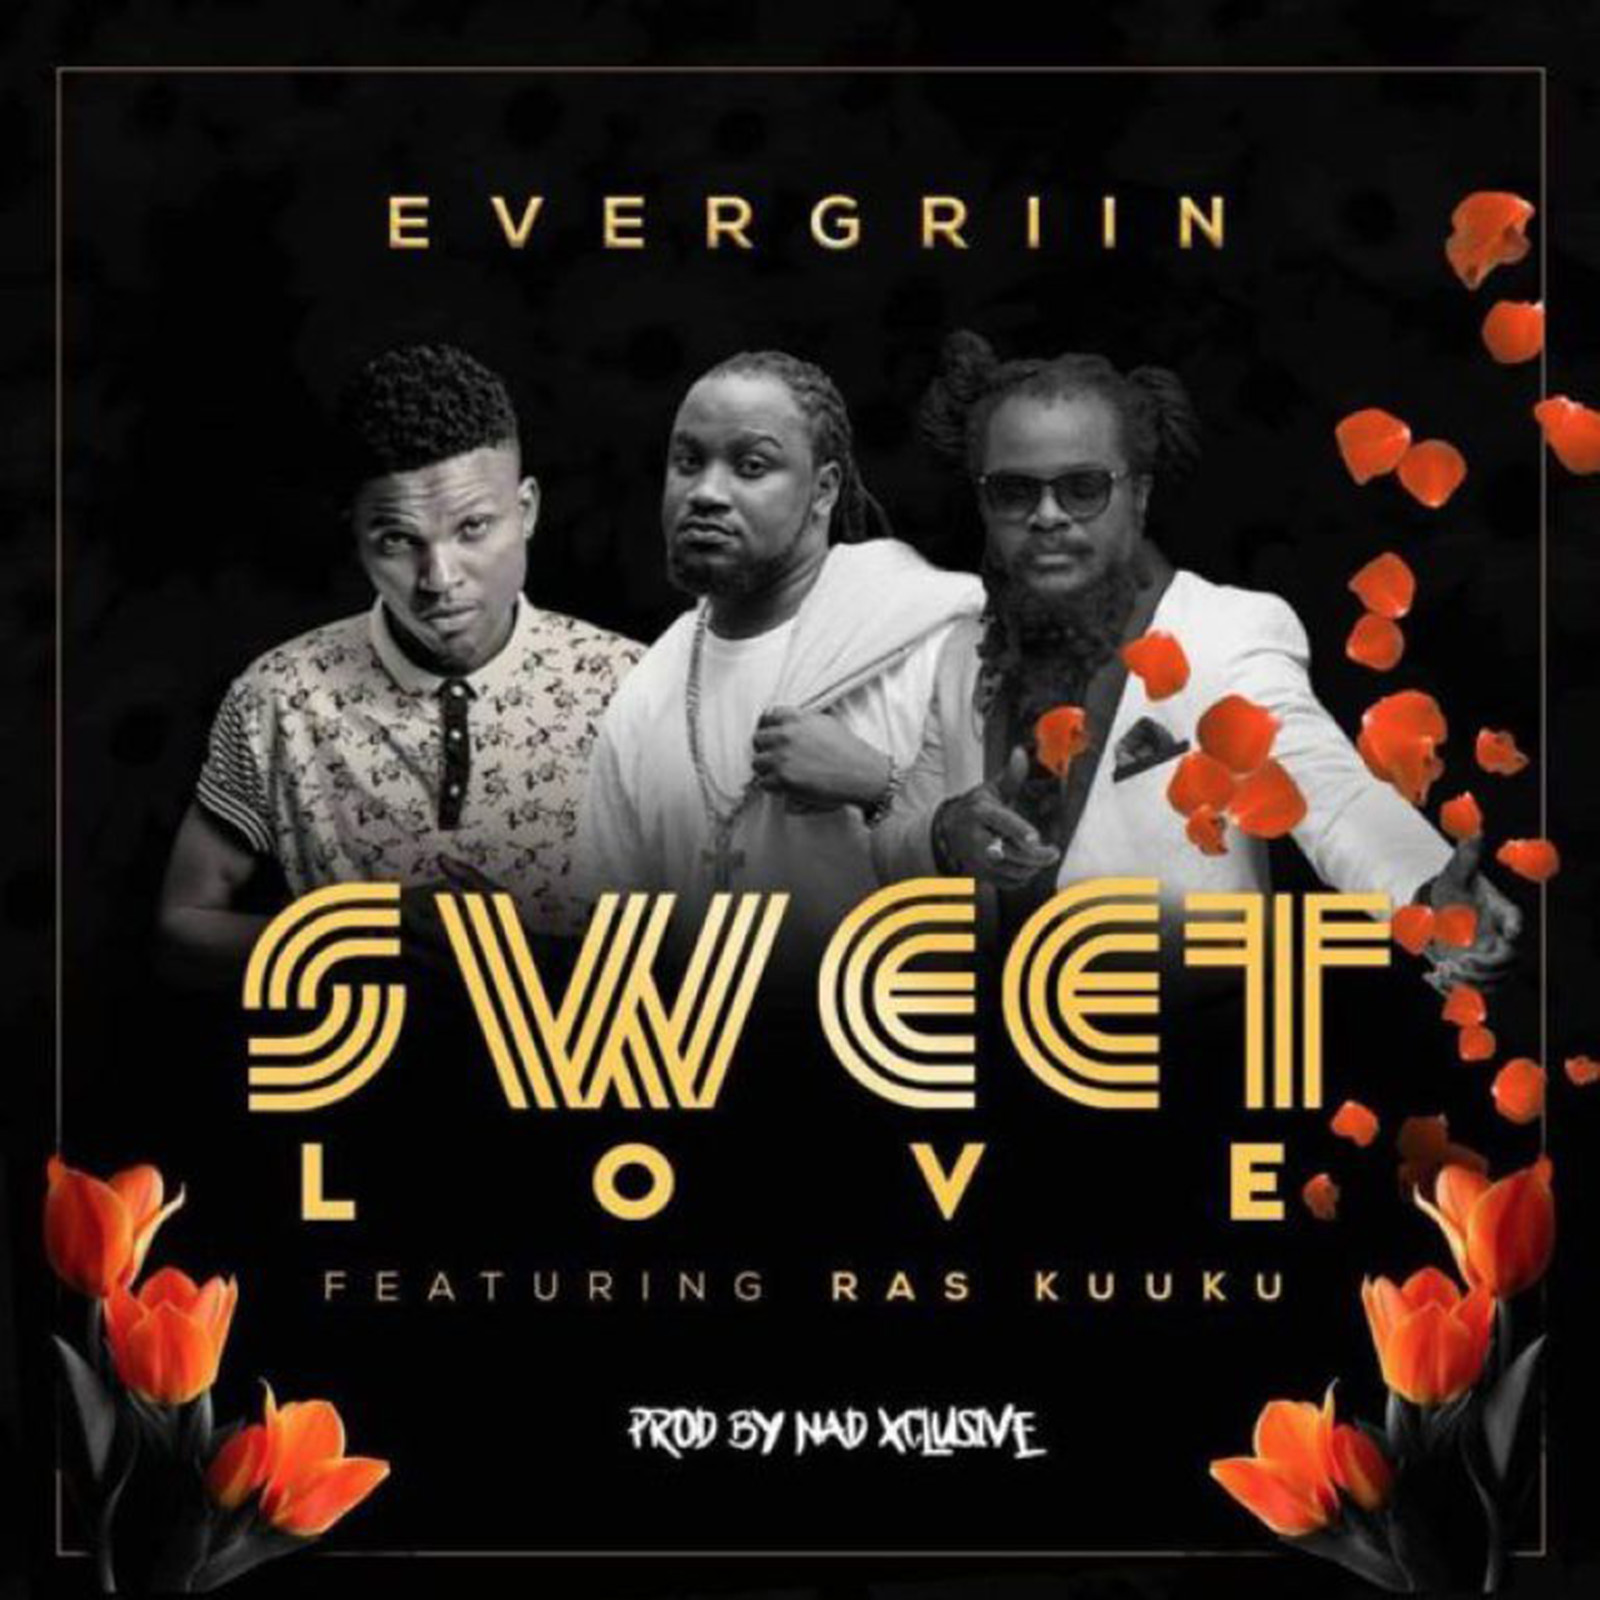 Sweet Love by Evergriin feat. Ras Kuuku